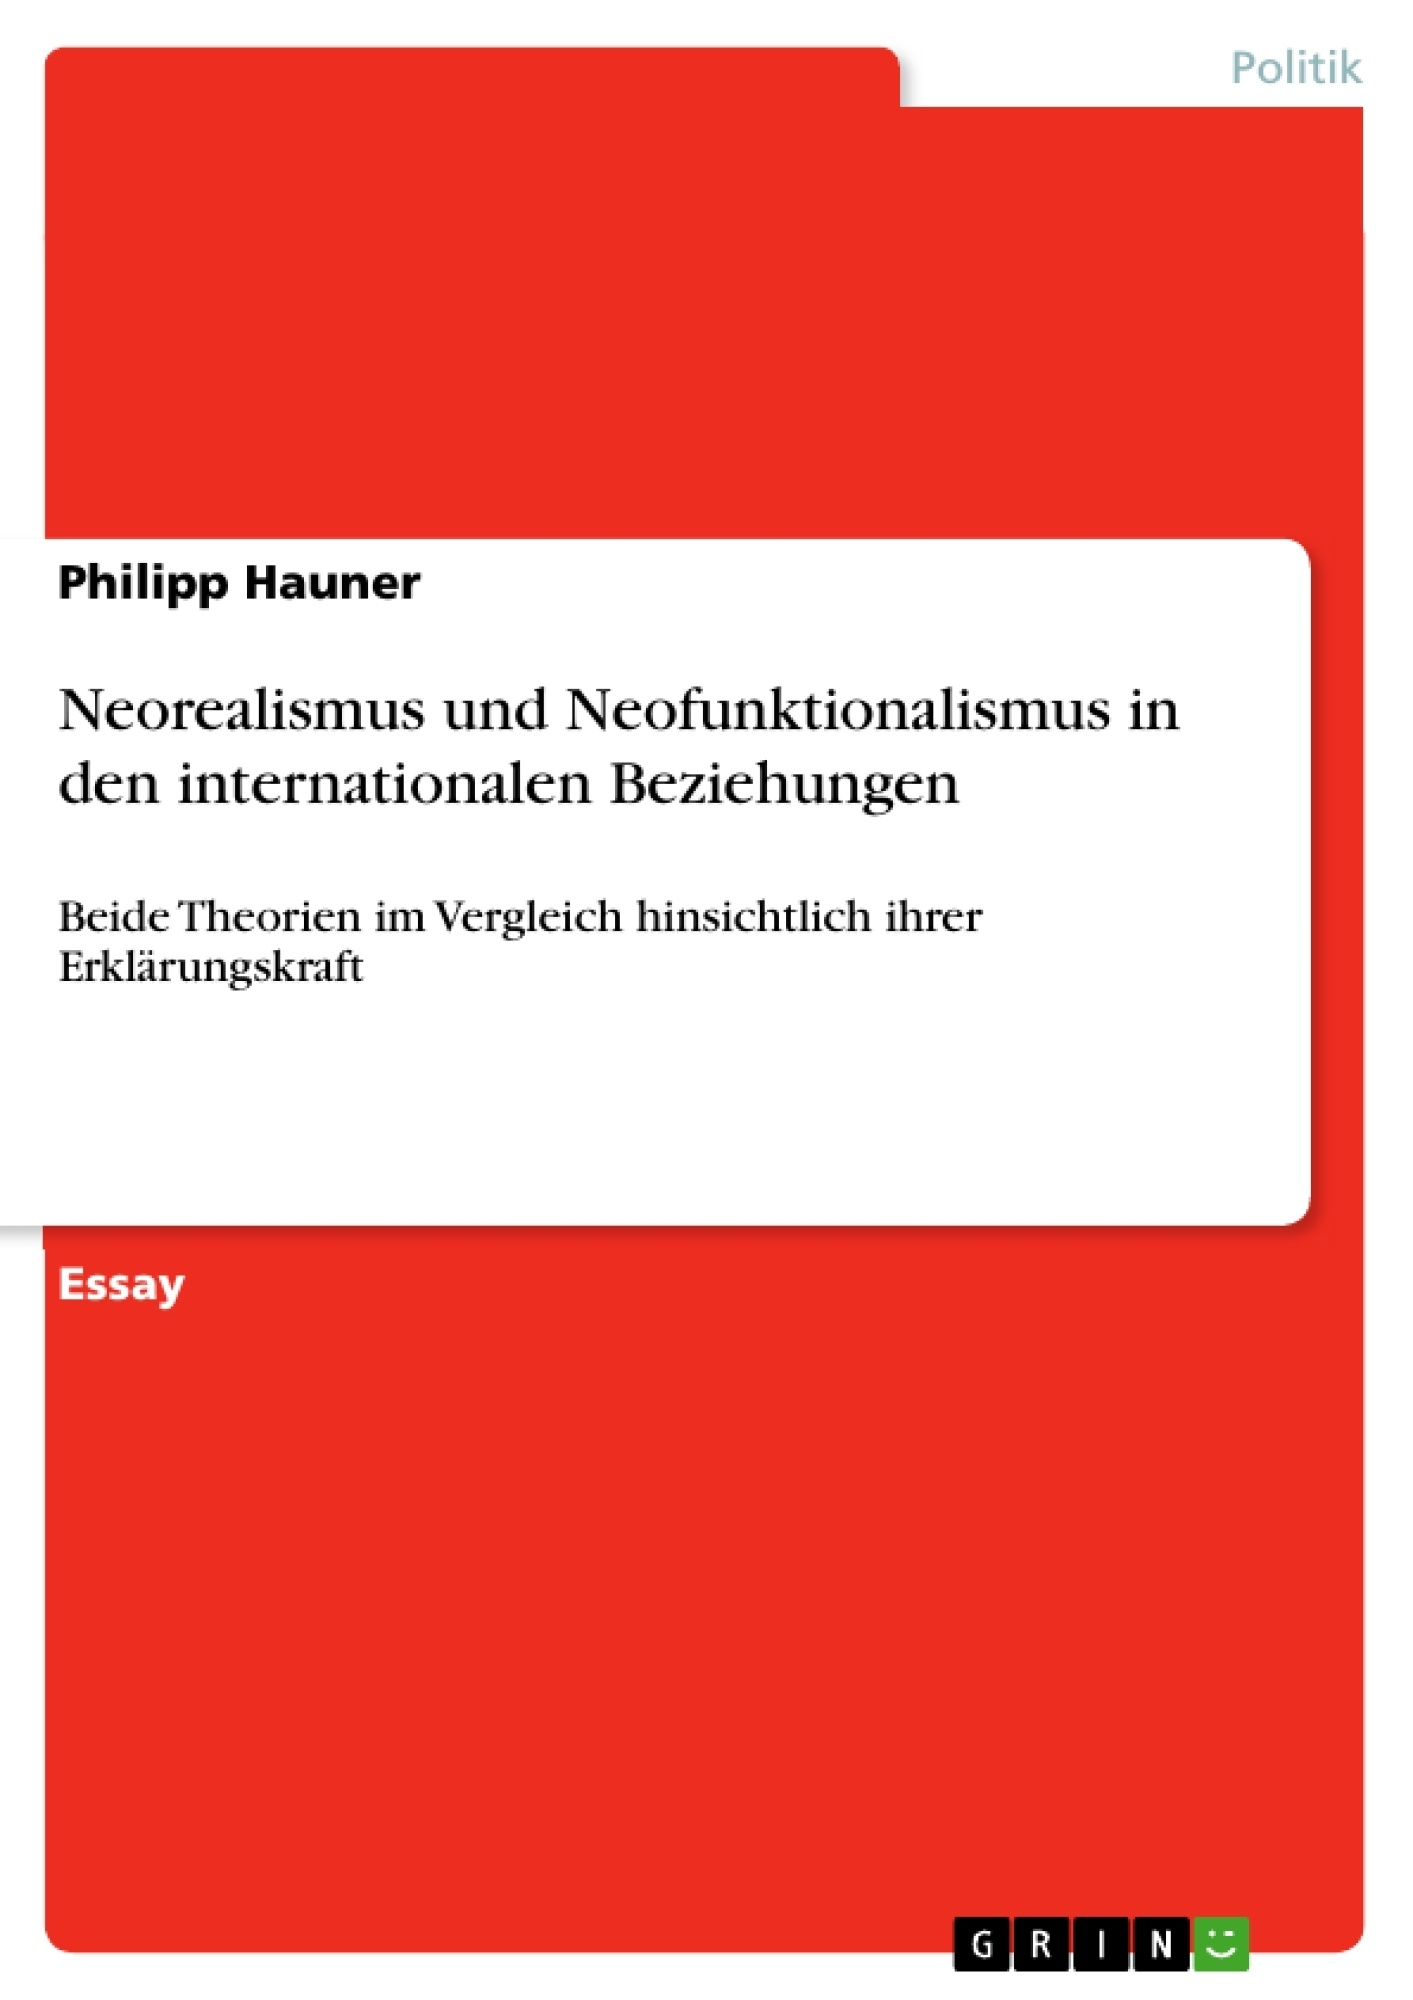 Titel: Neorealismus und Neofunktionalismus in den internationalen Beziehungen